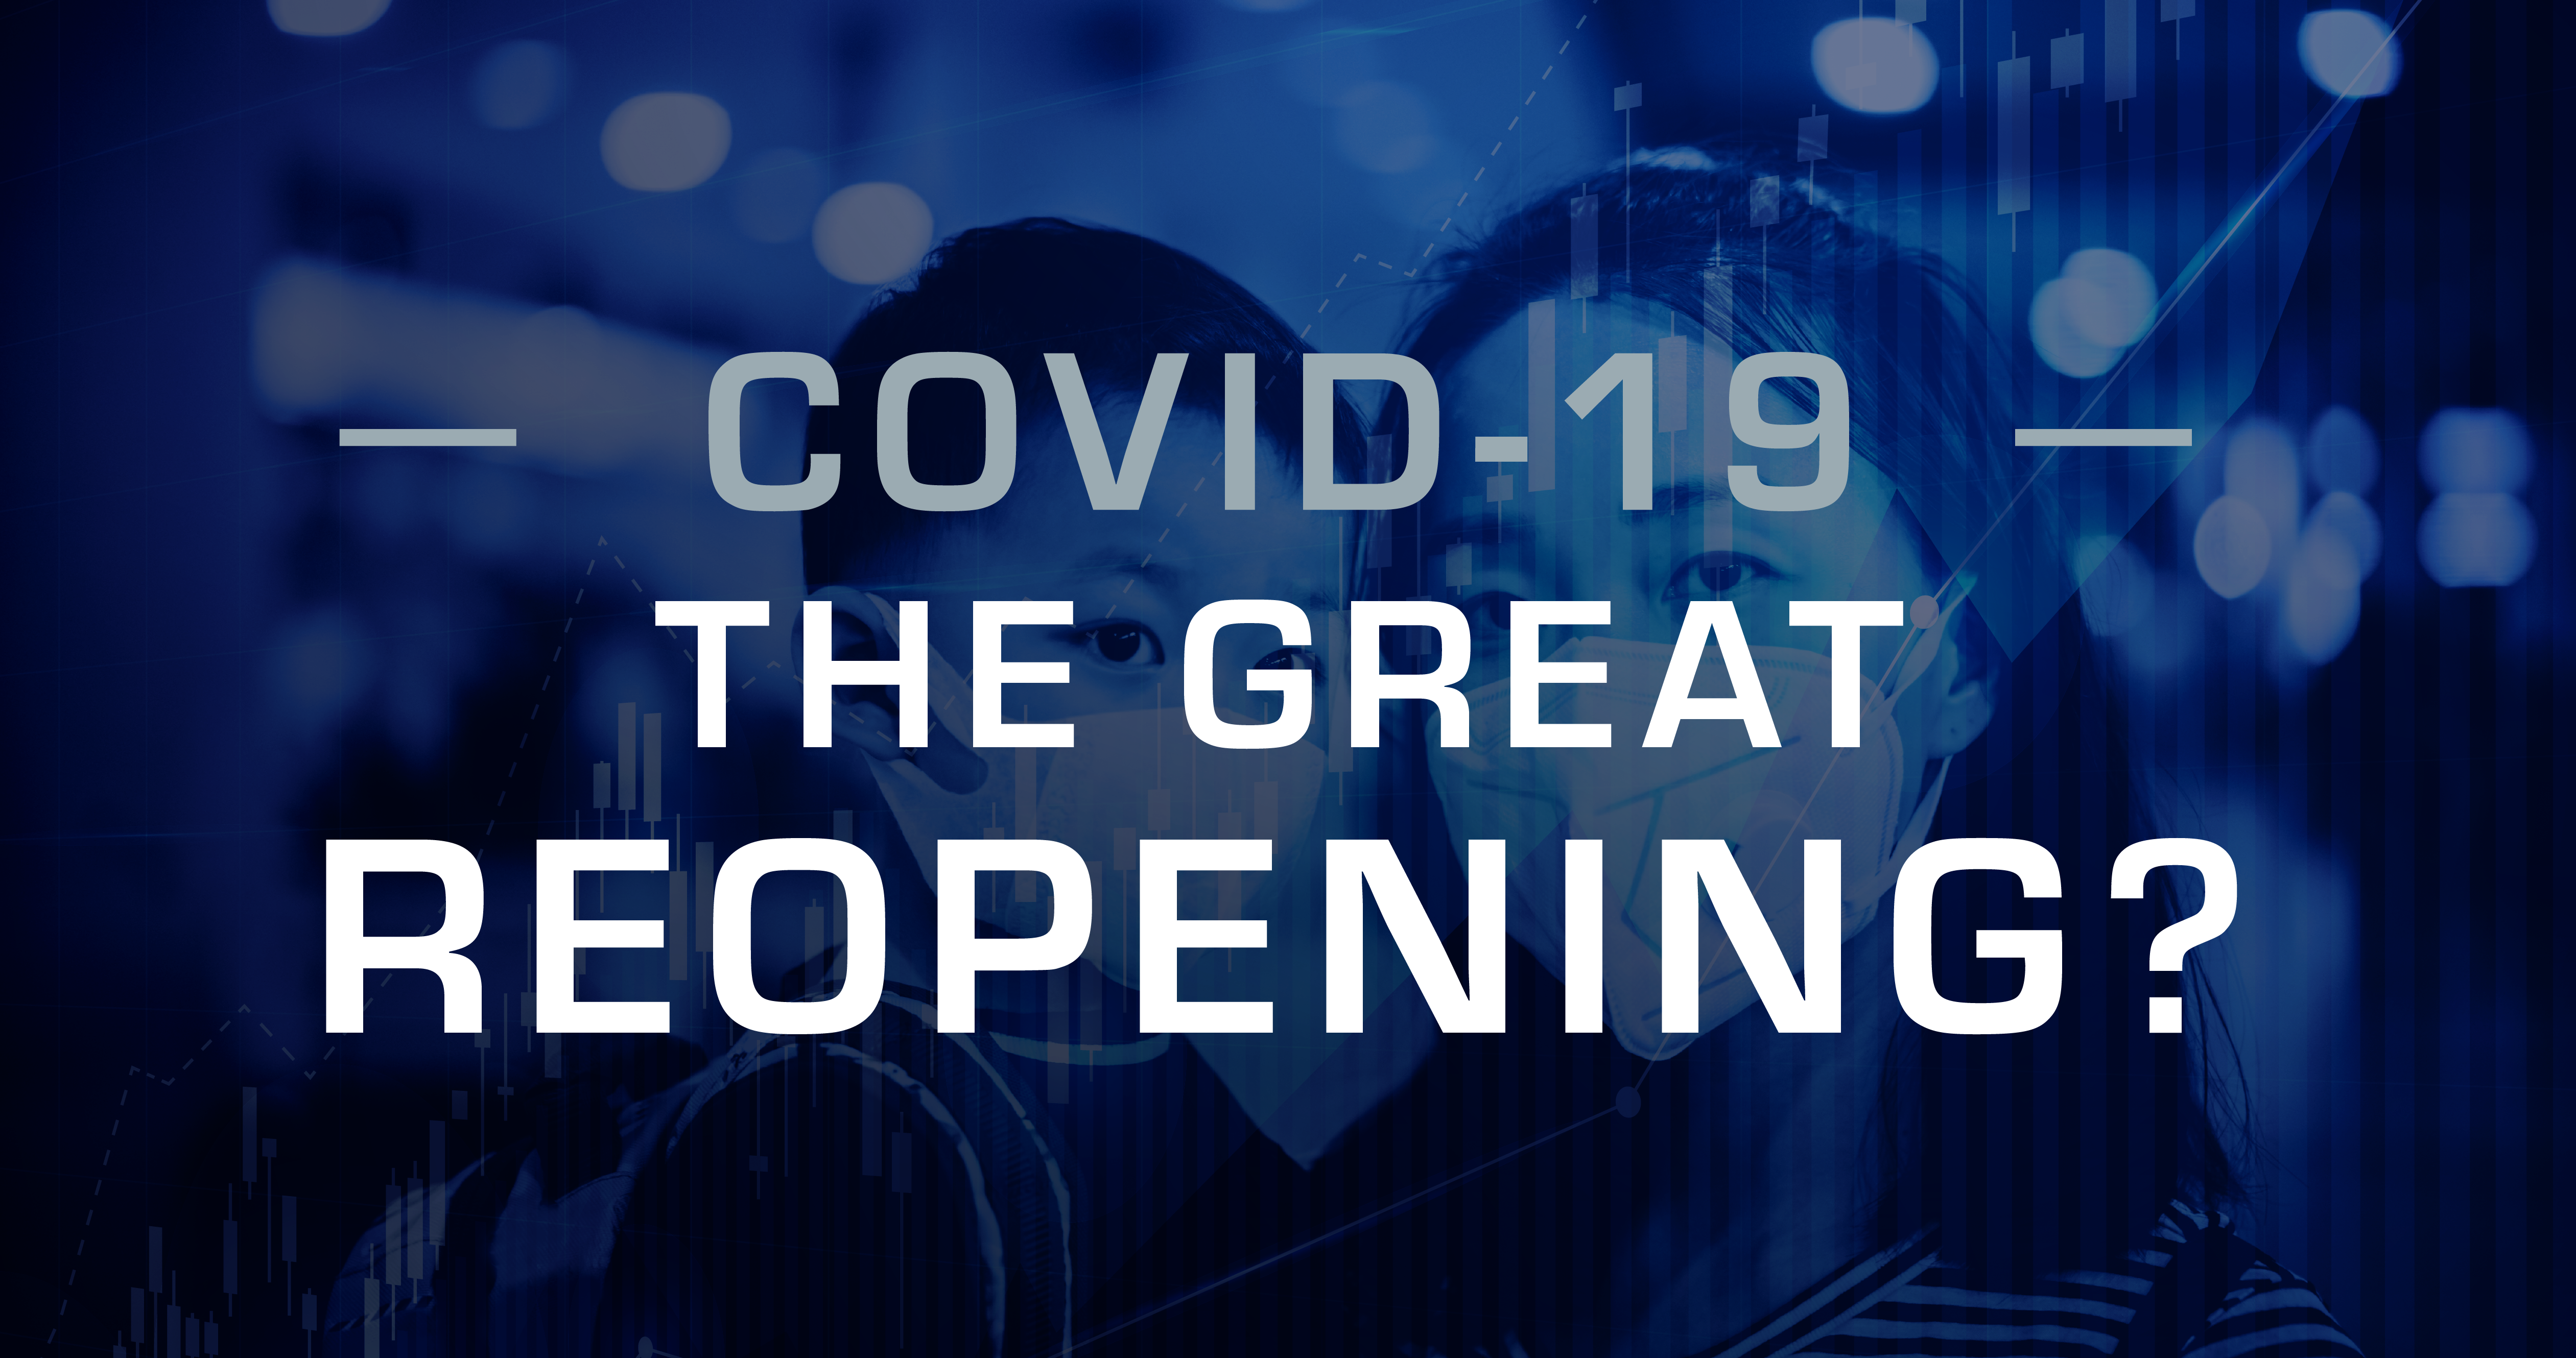 COVID-19: The Great Reopening?